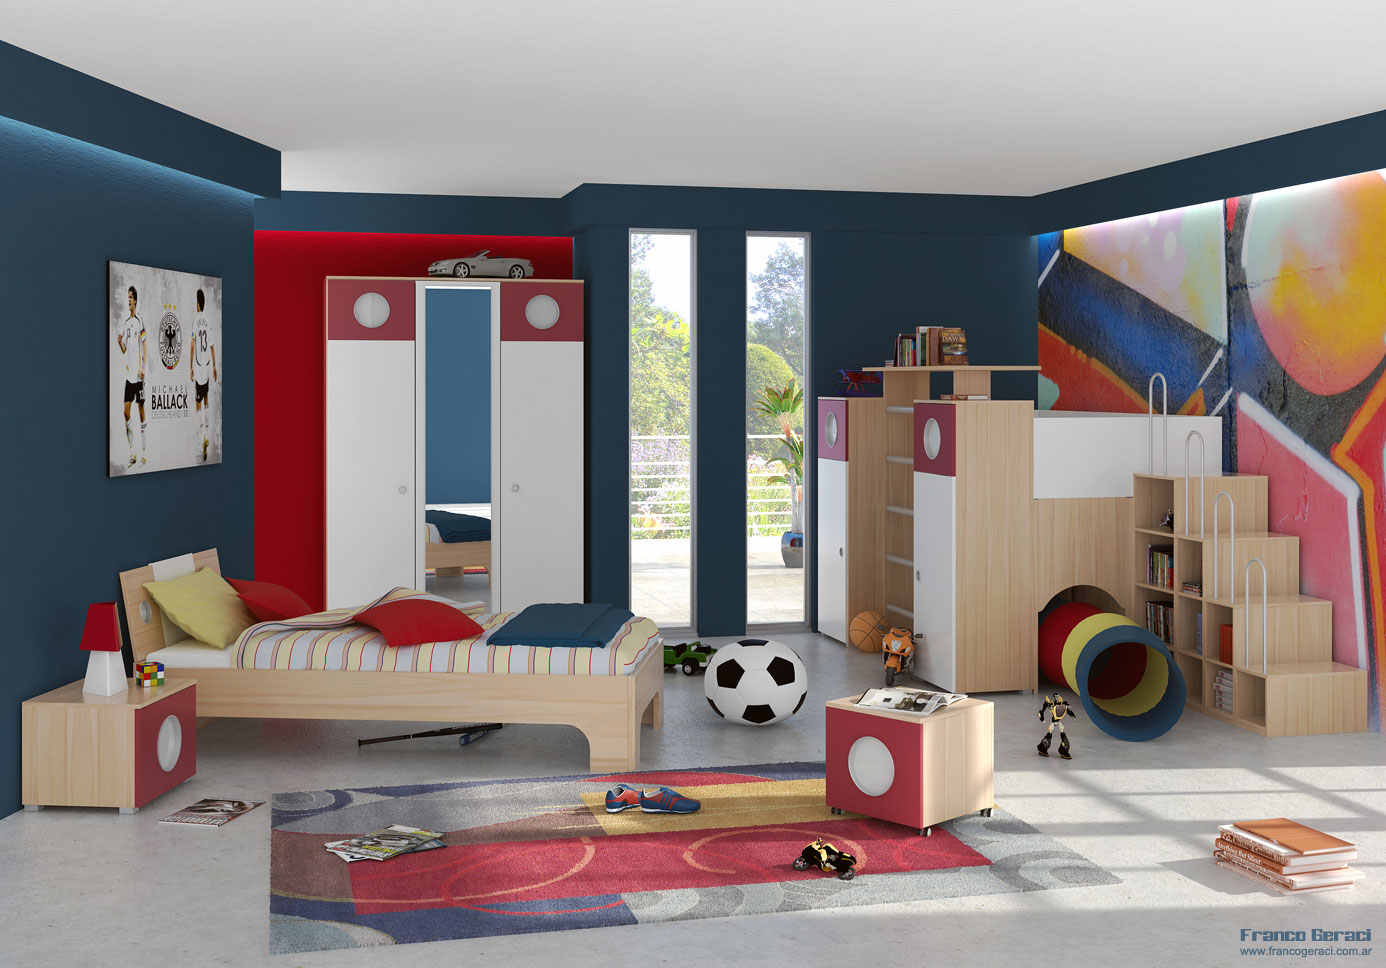 A spacious kids bedroom design ideas interior design ideas for Children bedroom design